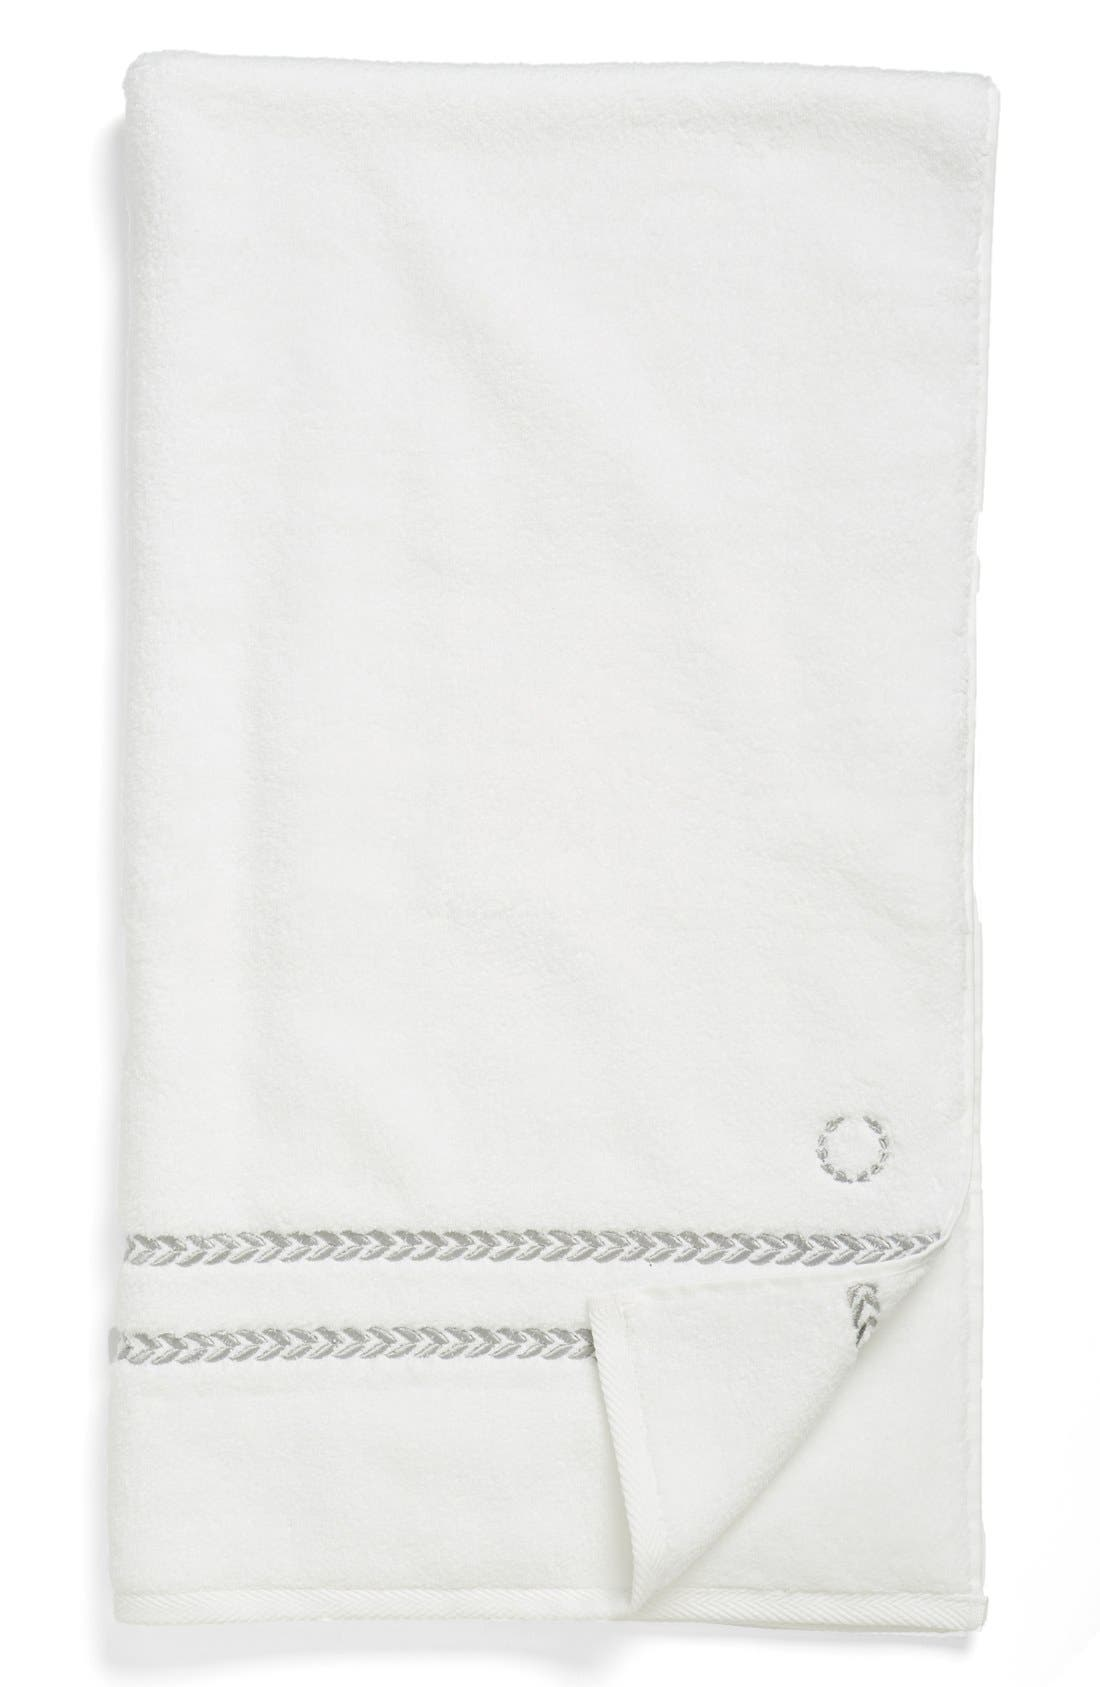 DENA HOME 'Pearl Essence' Bath Towel